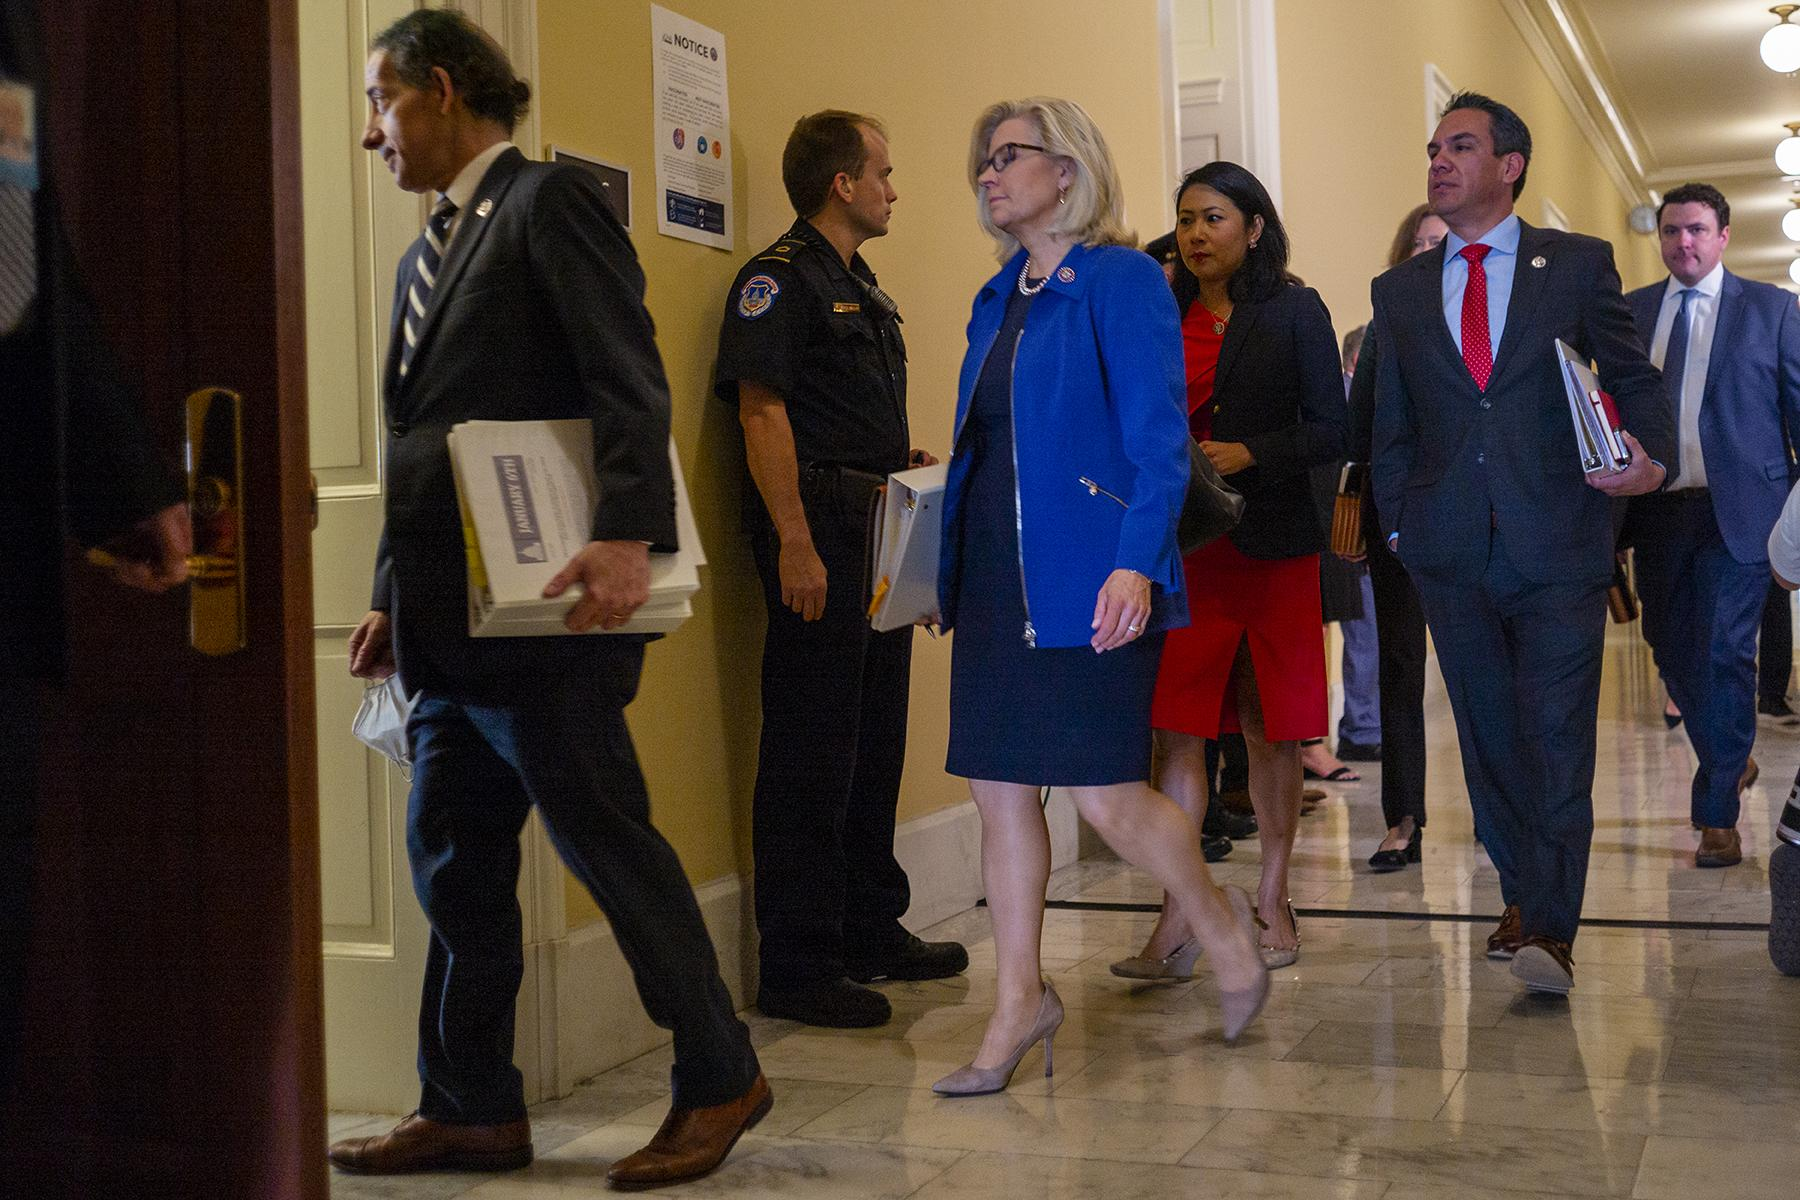 Liz Cheney walking into the hearing in the Cannon Office Building in the day the January 6 Commission started.